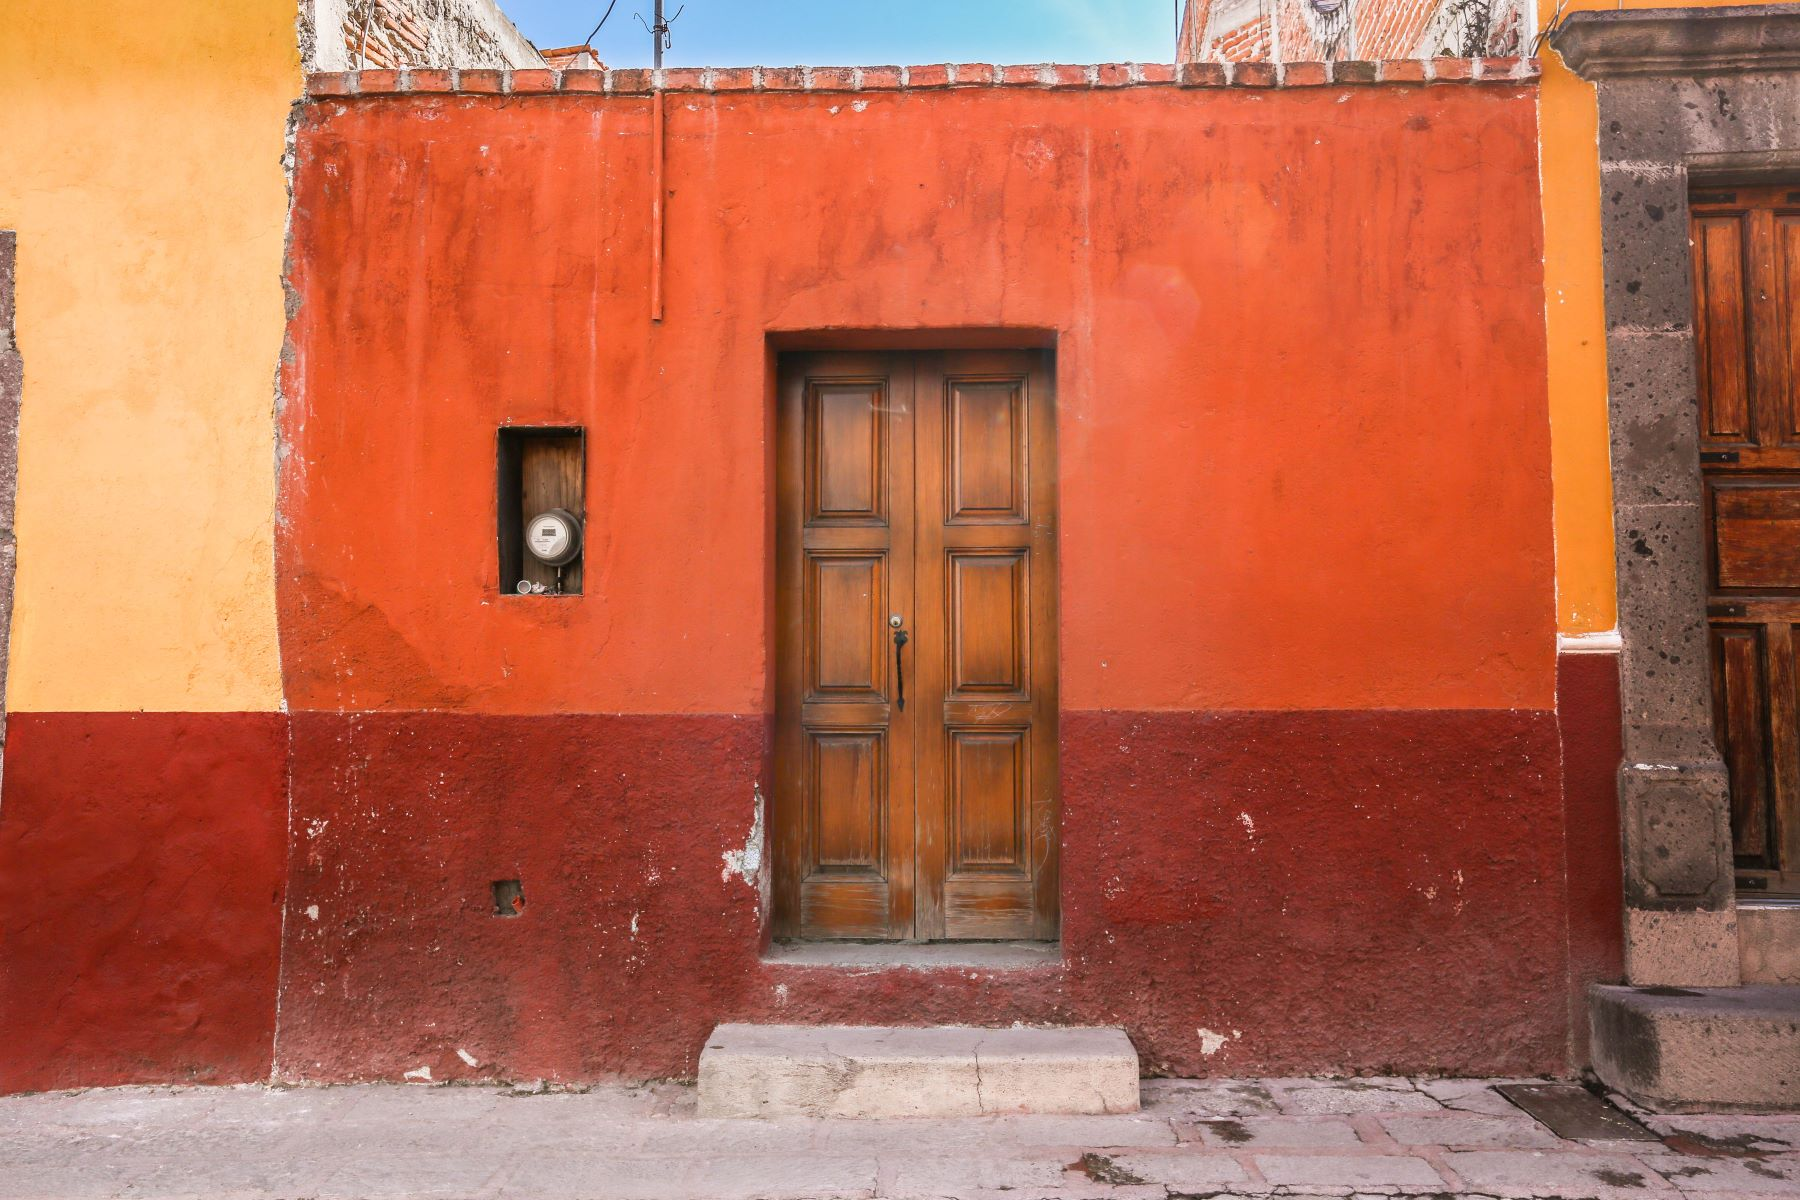 Land for Sale at Hernandez Macias 16A San Miguel De Allende, Guanajuato Mexico